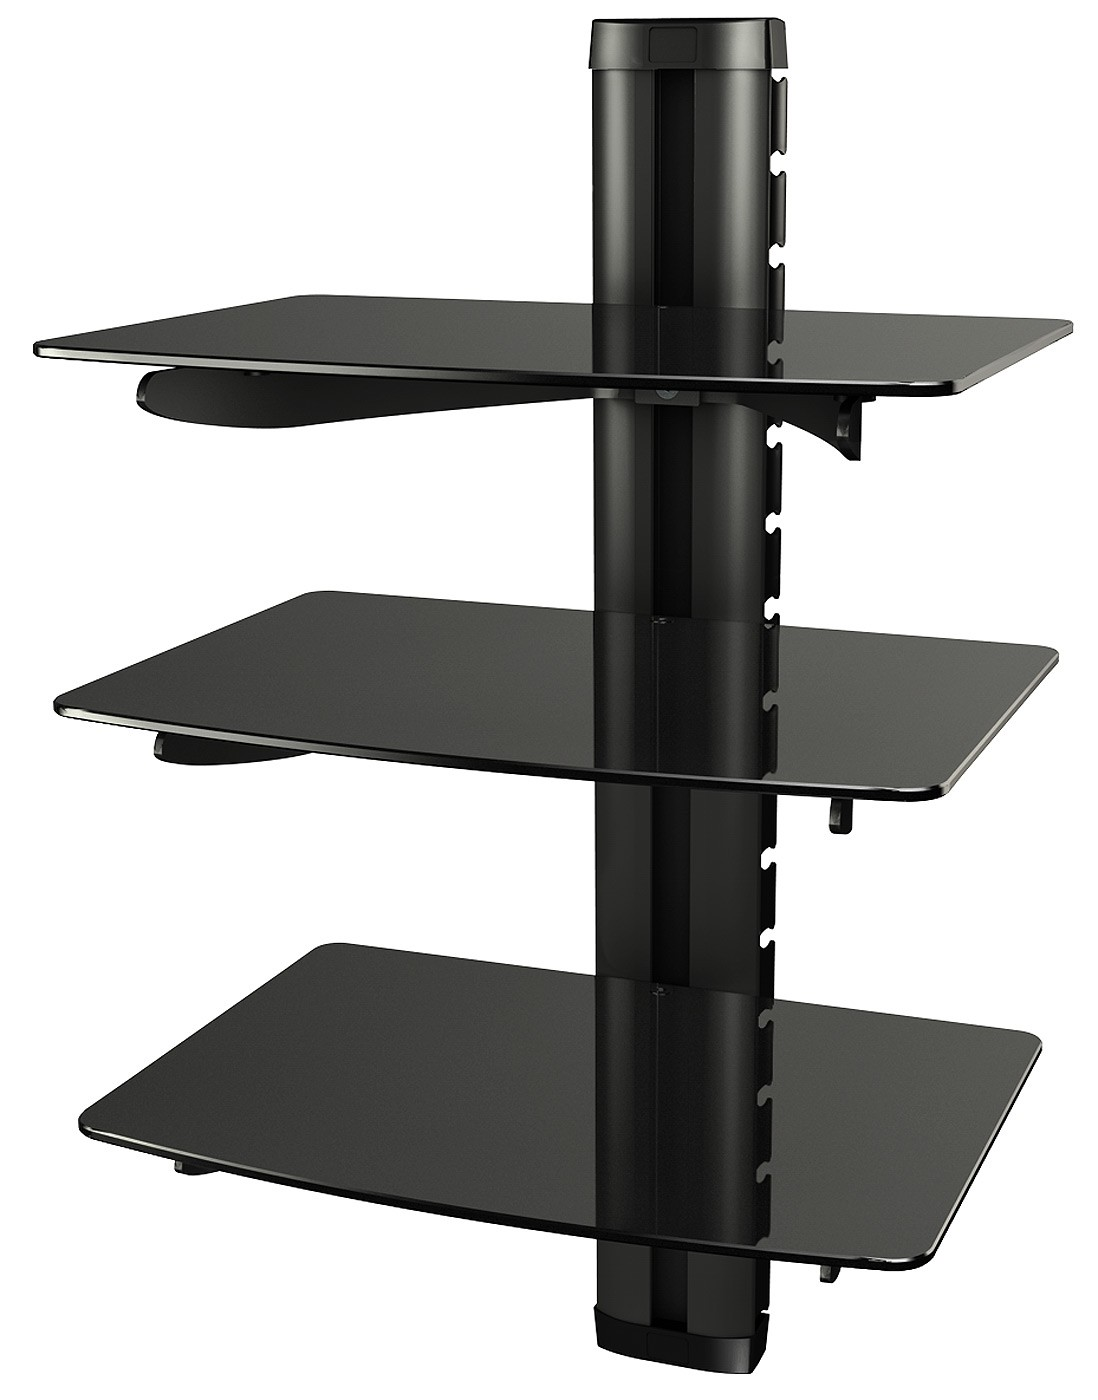 dvd regal glas wand glasregal hifi wandboard halterung 11176. Black Bedroom Furniture Sets. Home Design Ideas